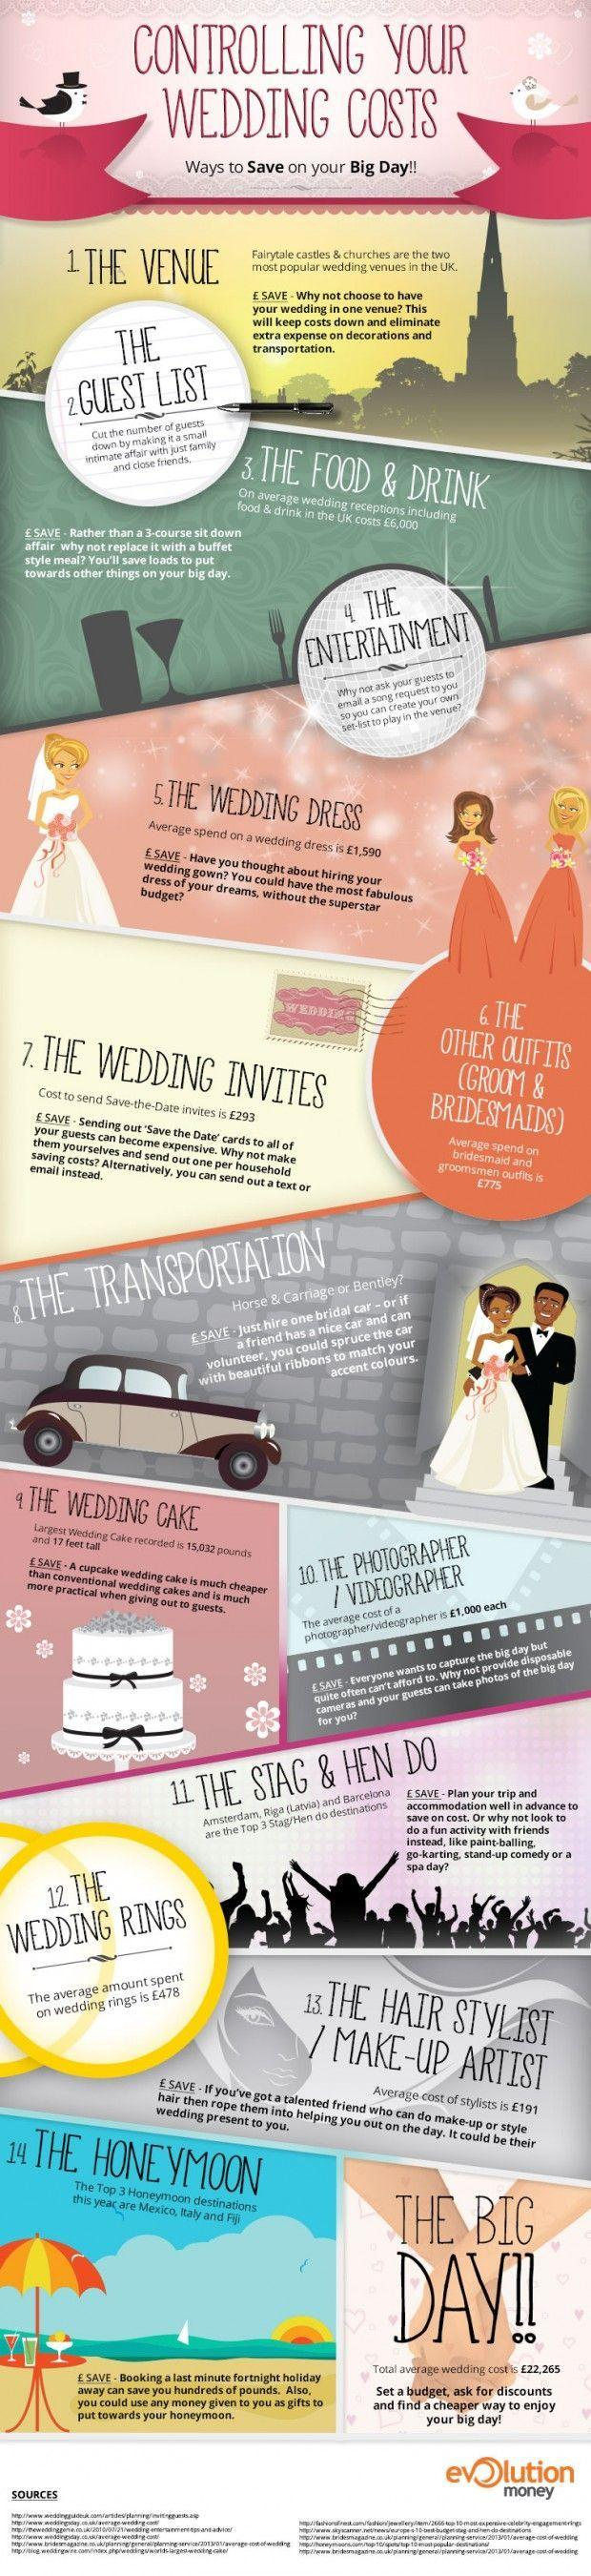 Wedding - 10 Wedding Planning Infographics You Probably Didn't Know You Needed